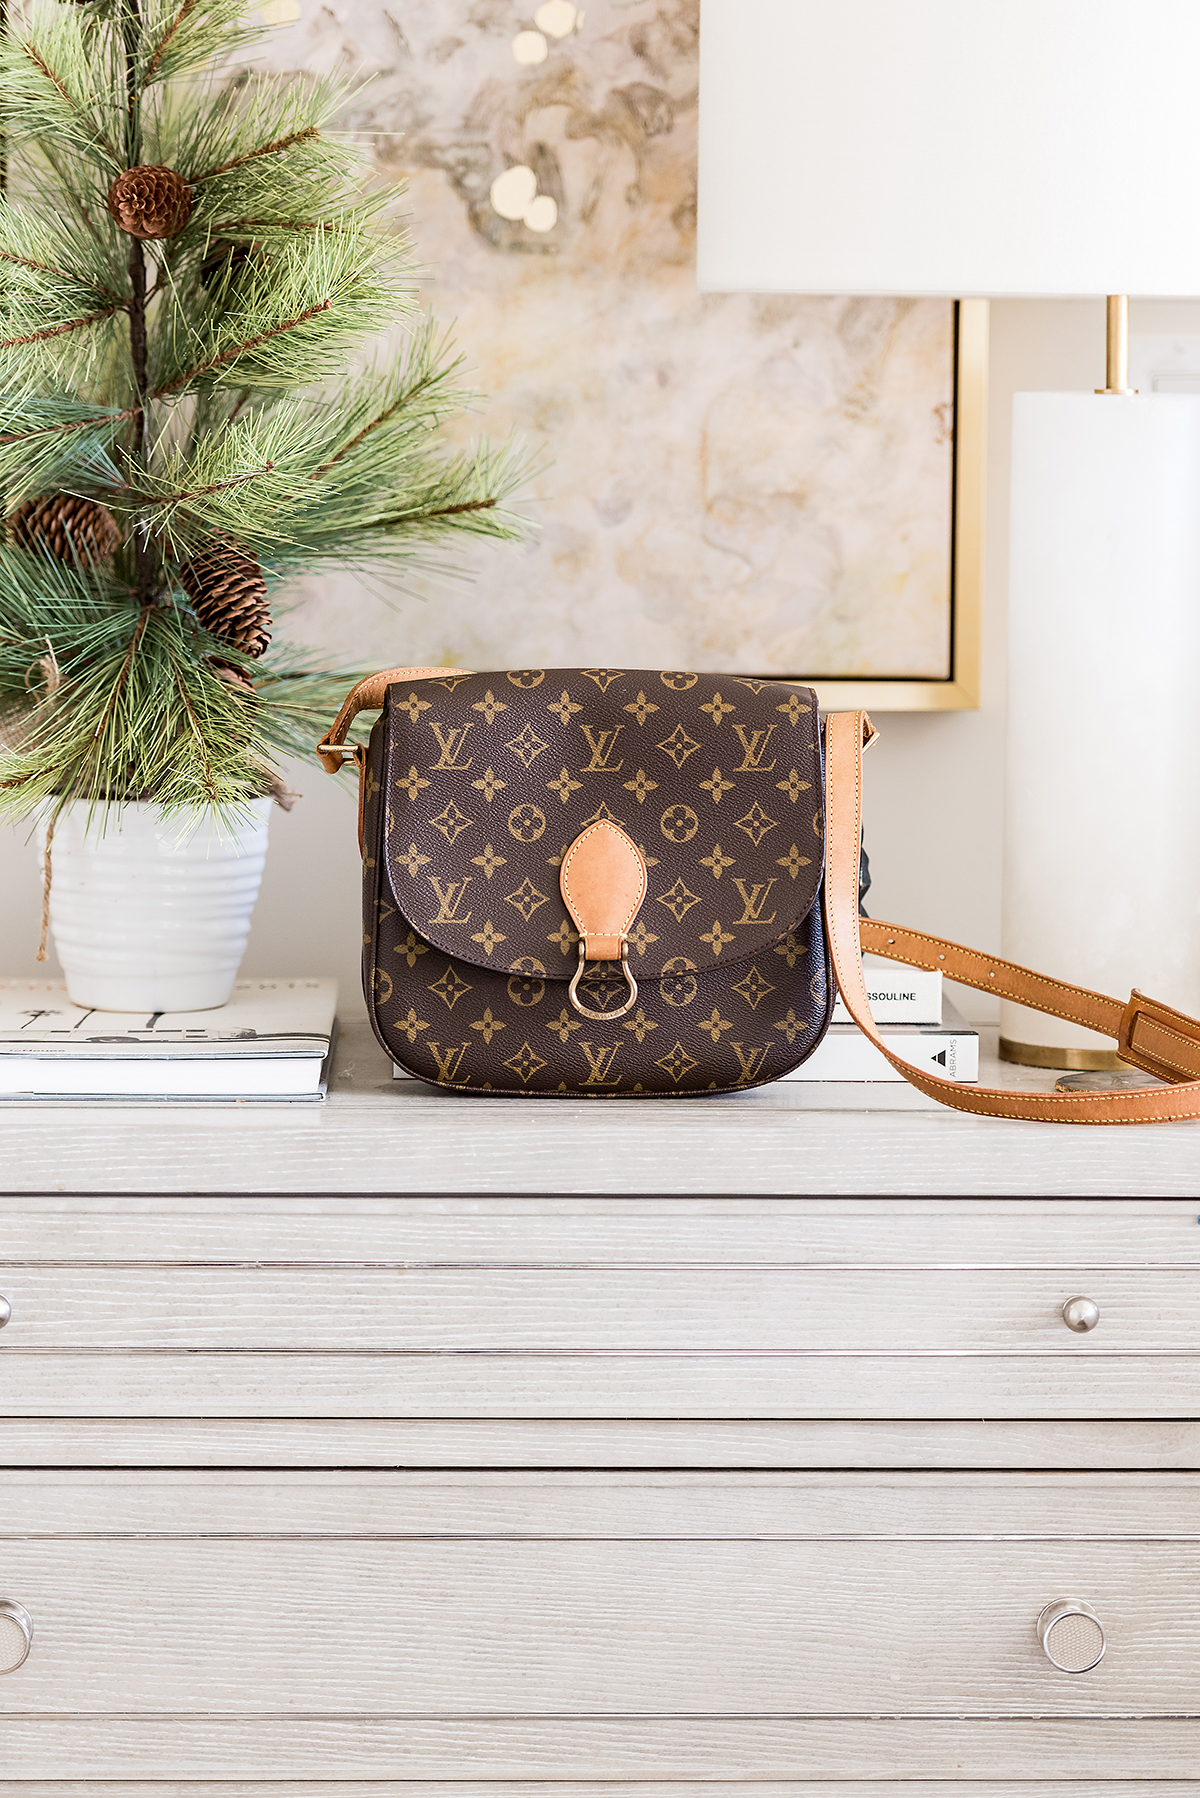 12 Days of Giveaways  Day 11 with The Lady Bag LV – Ivory Lane 29997ecd8a609